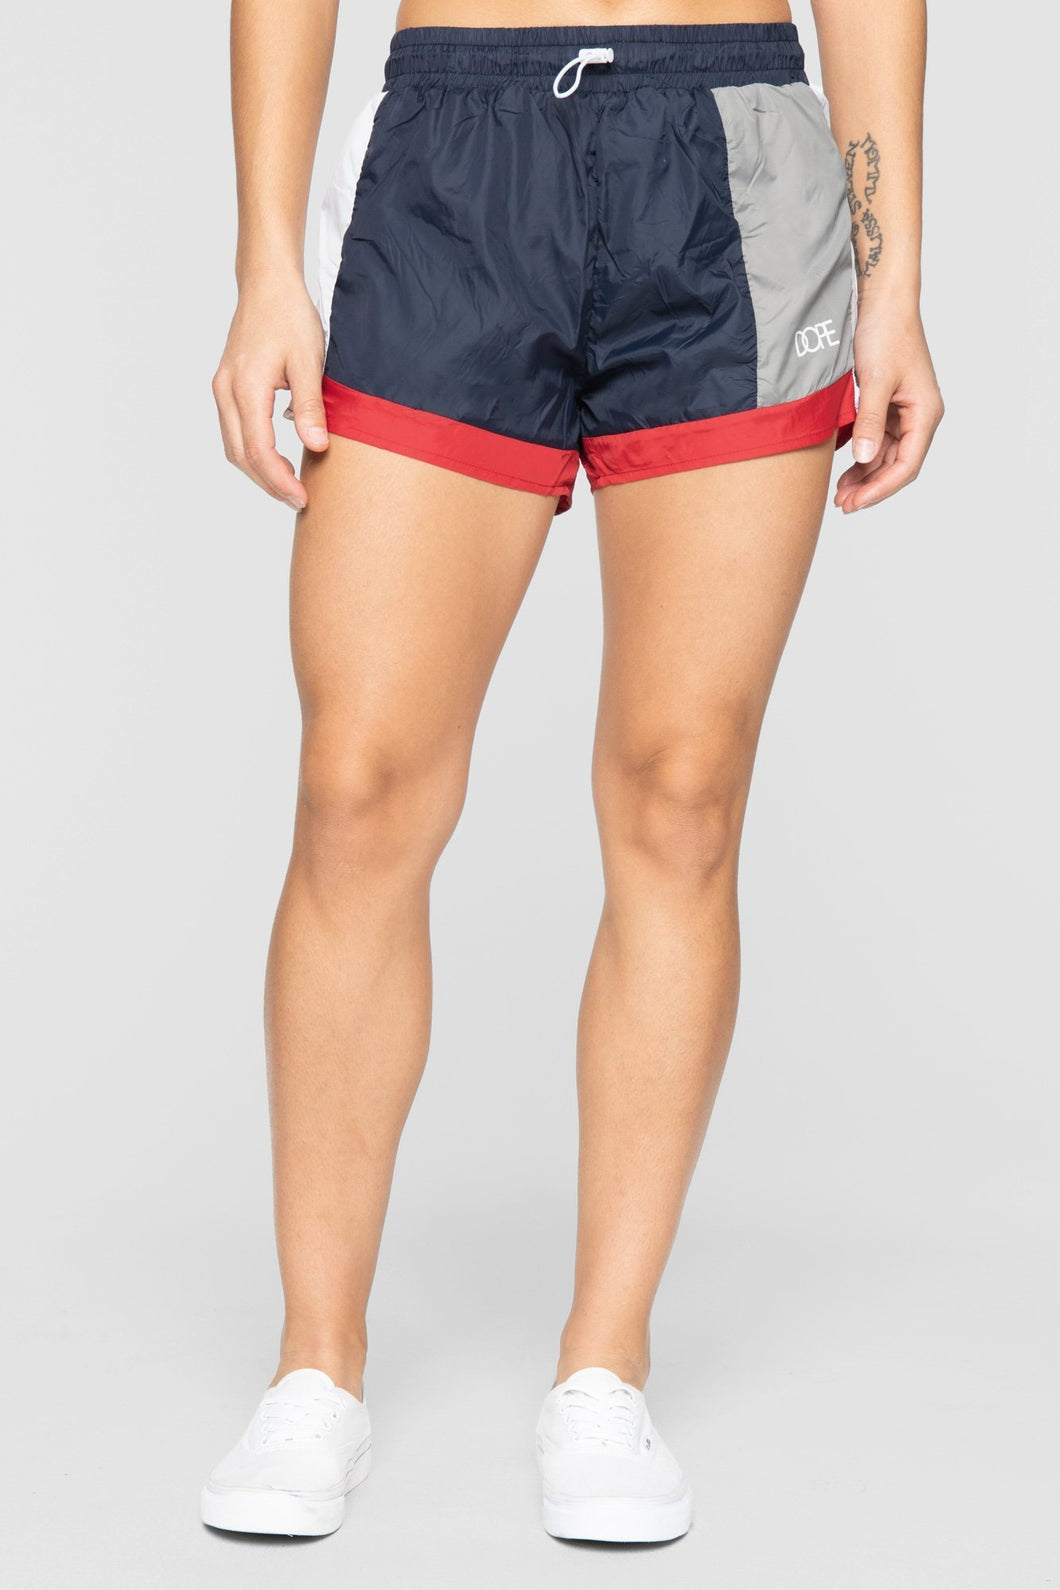 DOPE Nuova Running Shorts #Navy/Red